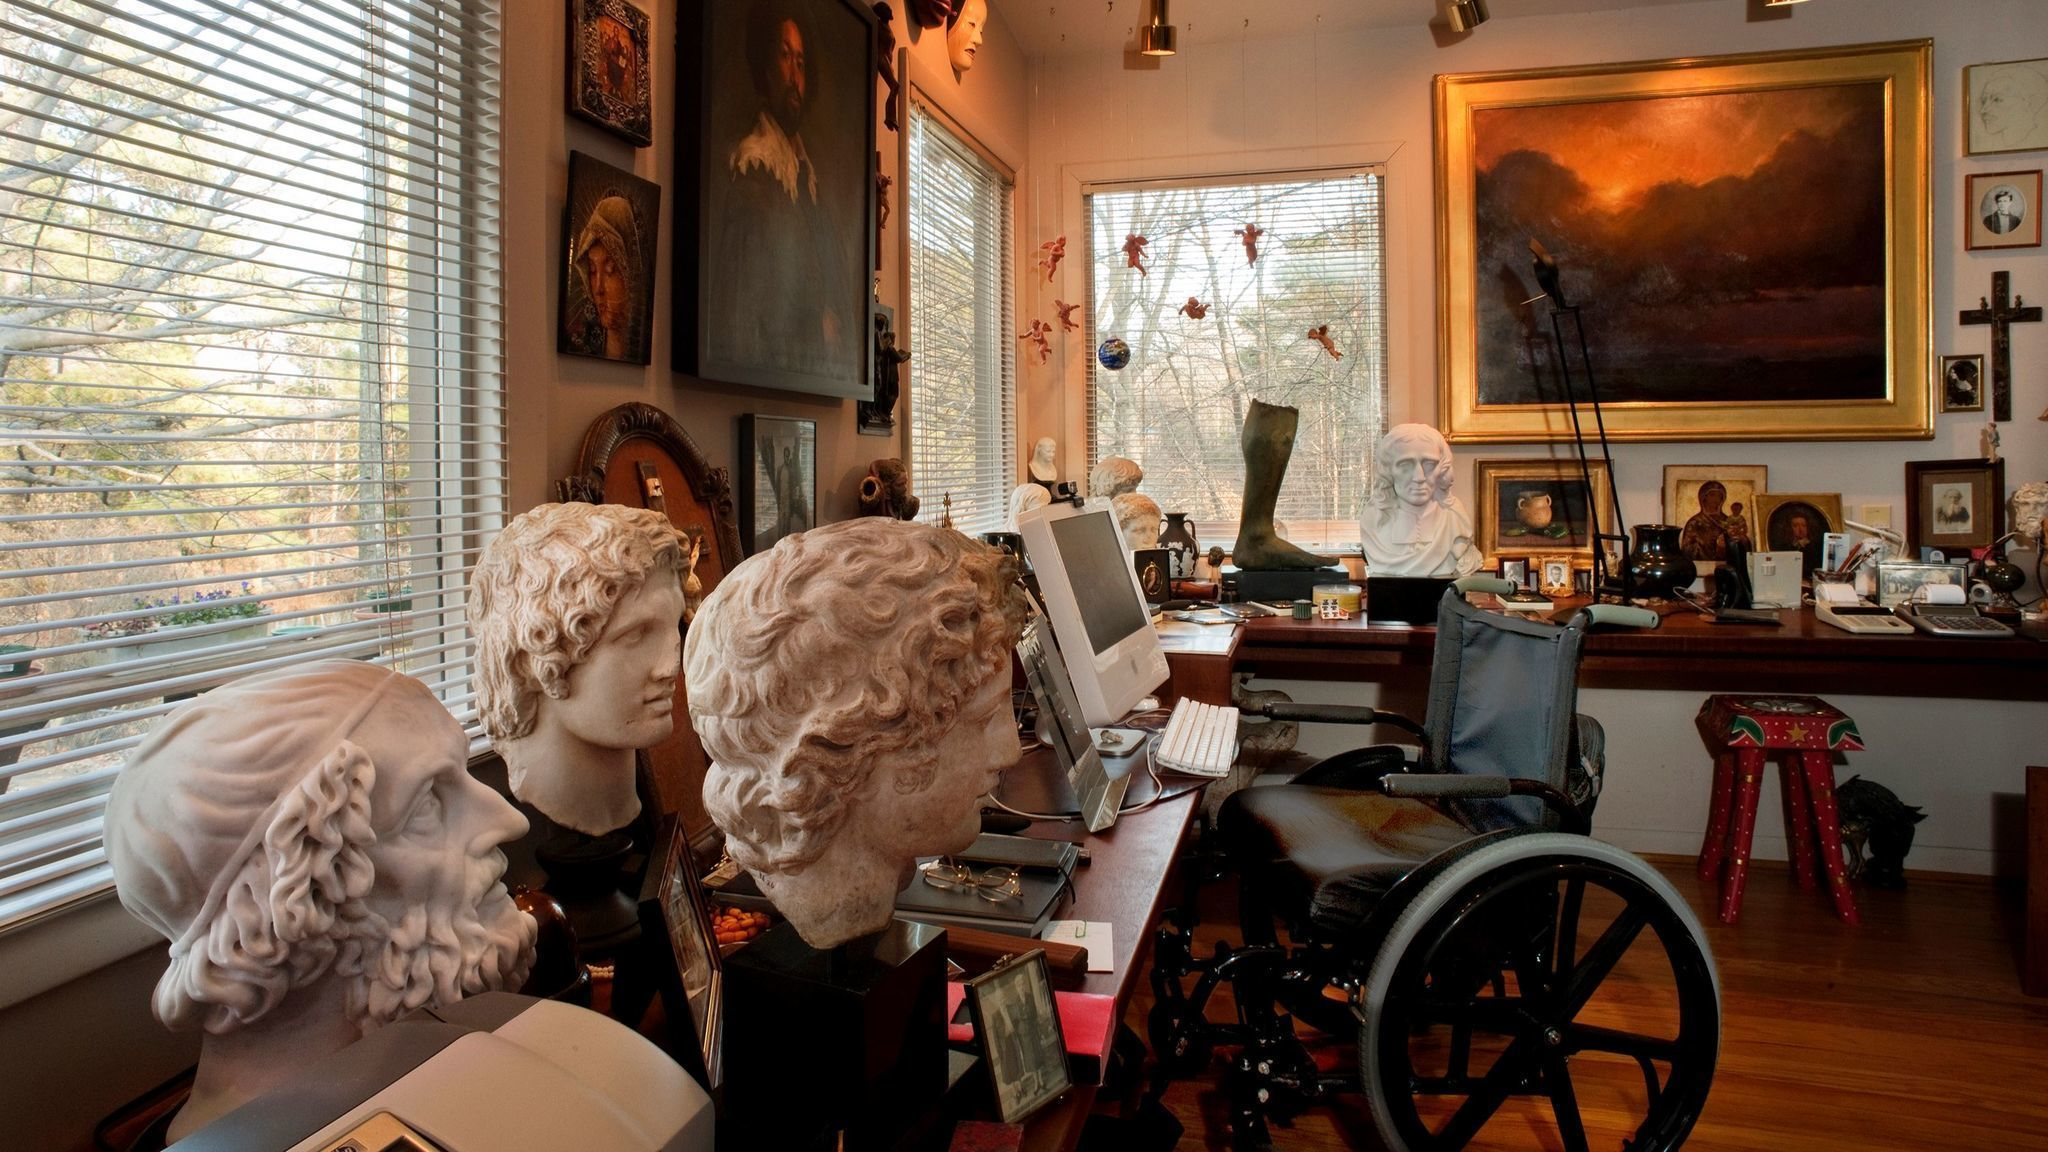 'Dream of a House' tours the eclectic home of writer Reynolds Price - LA Times